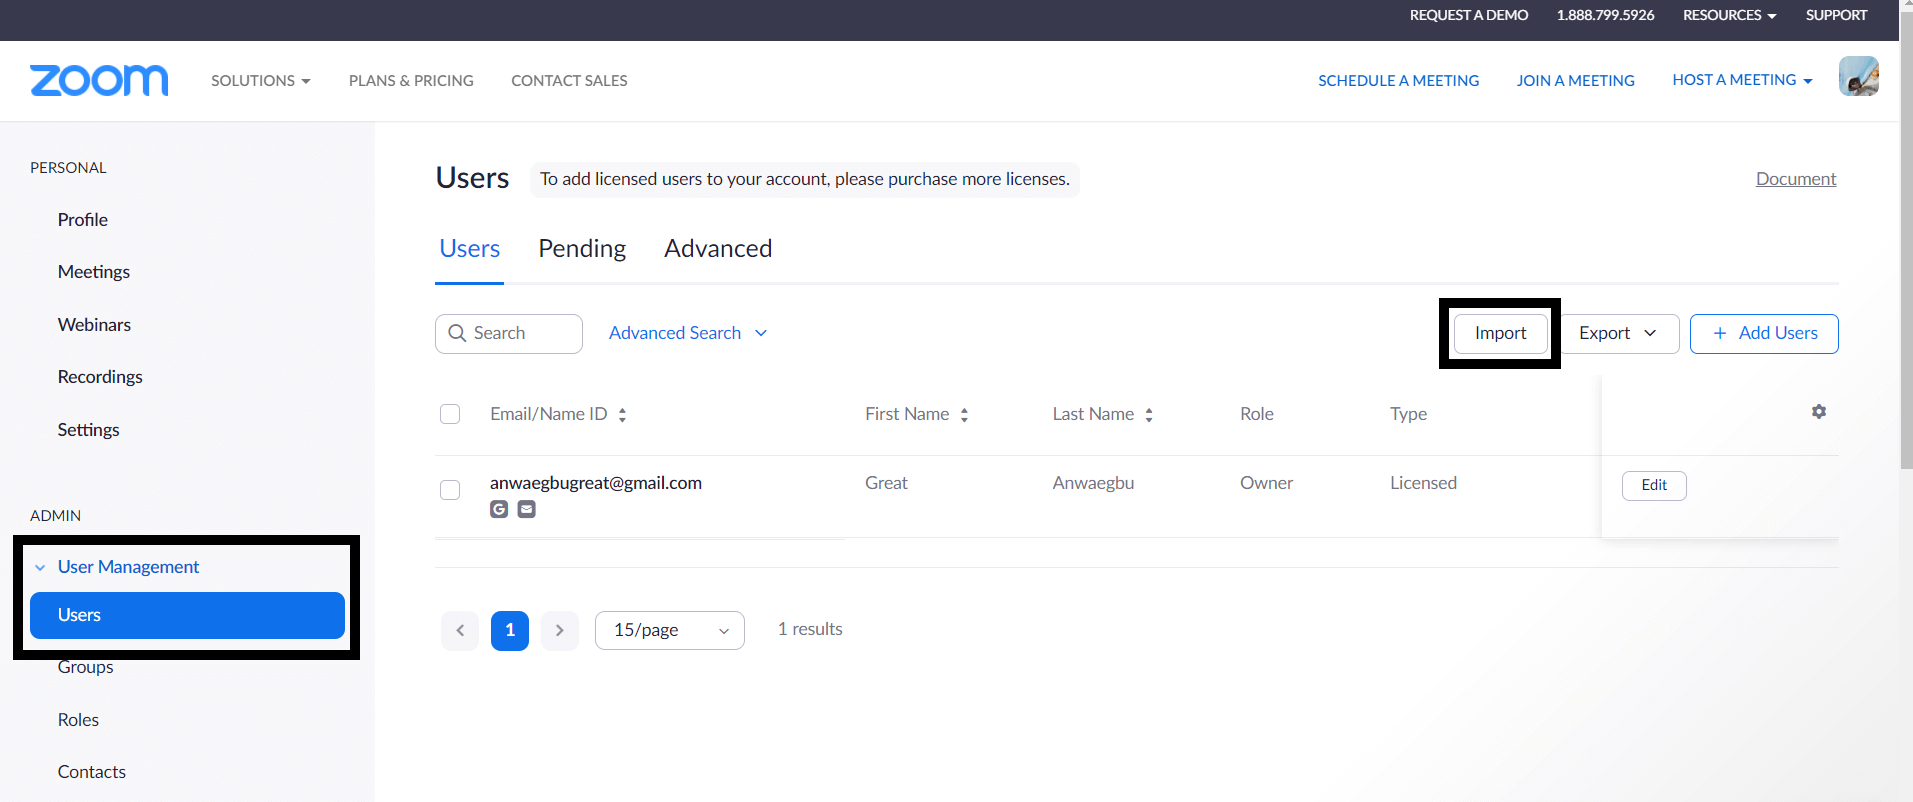 Import Microsoft Teams data to Zoom